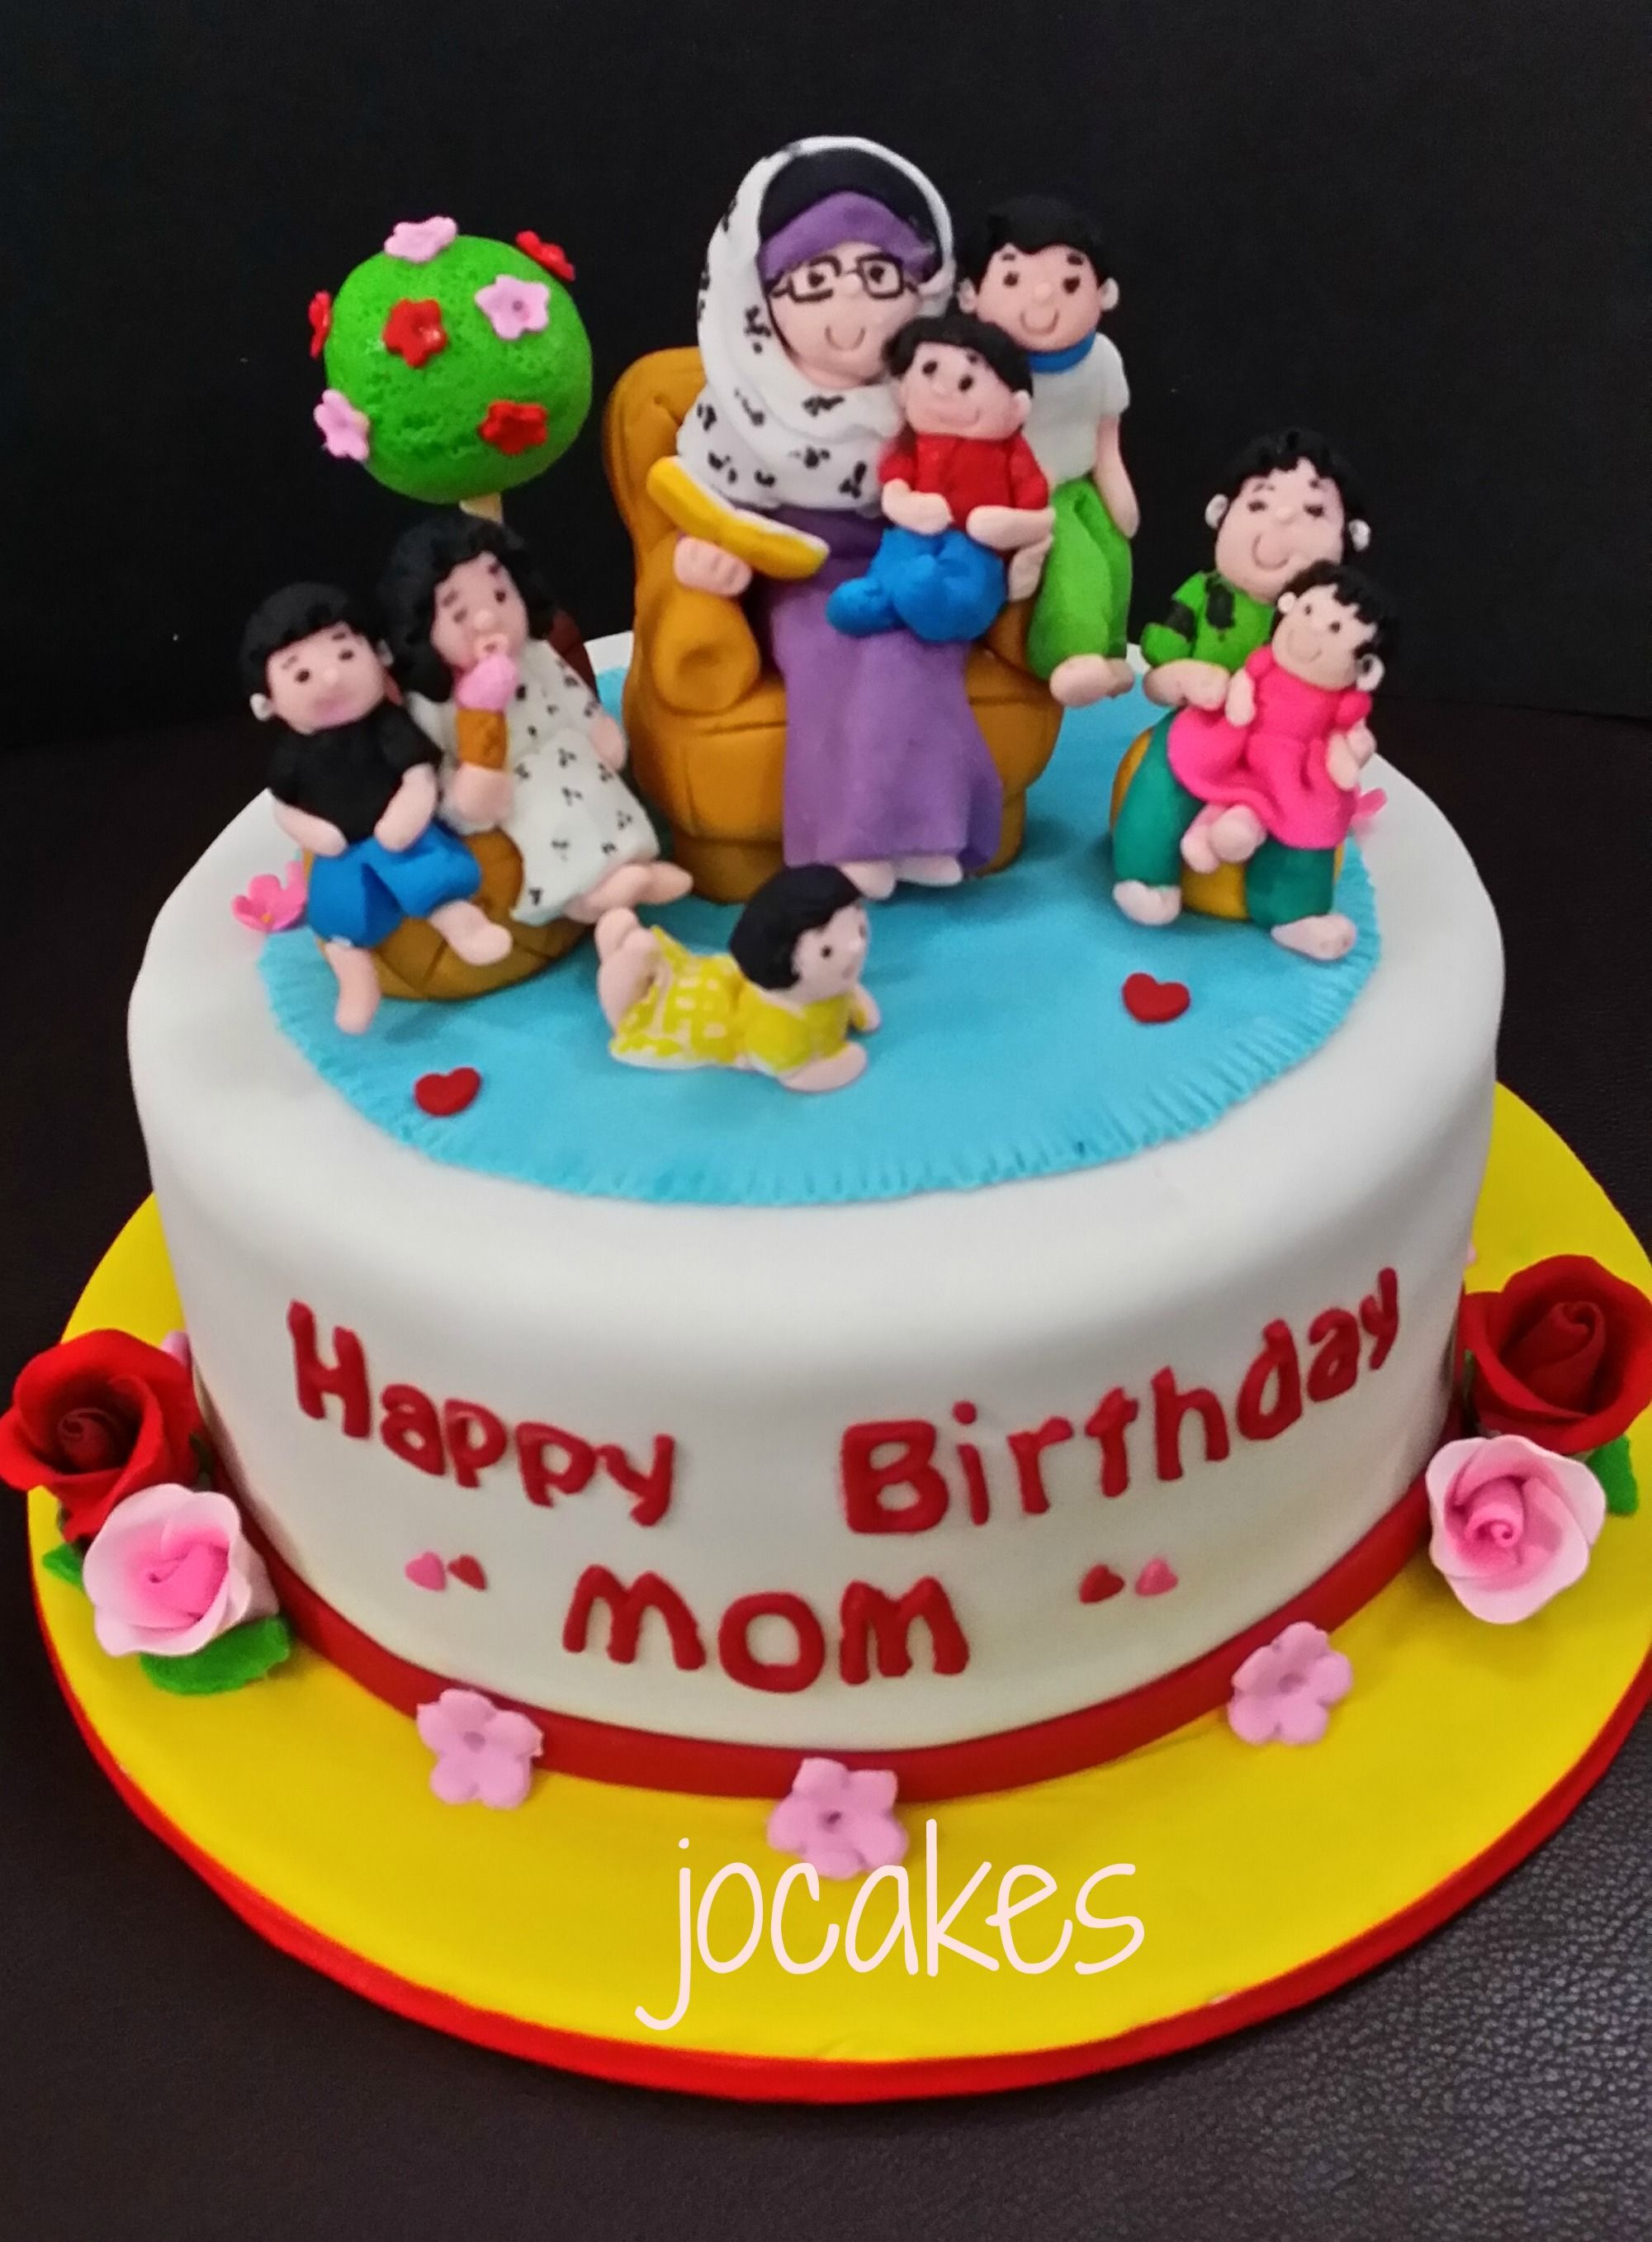 Birthday Cake For Mom.Birthday Cake For Mom 27 Brilliant Picture Of Mom Birthday